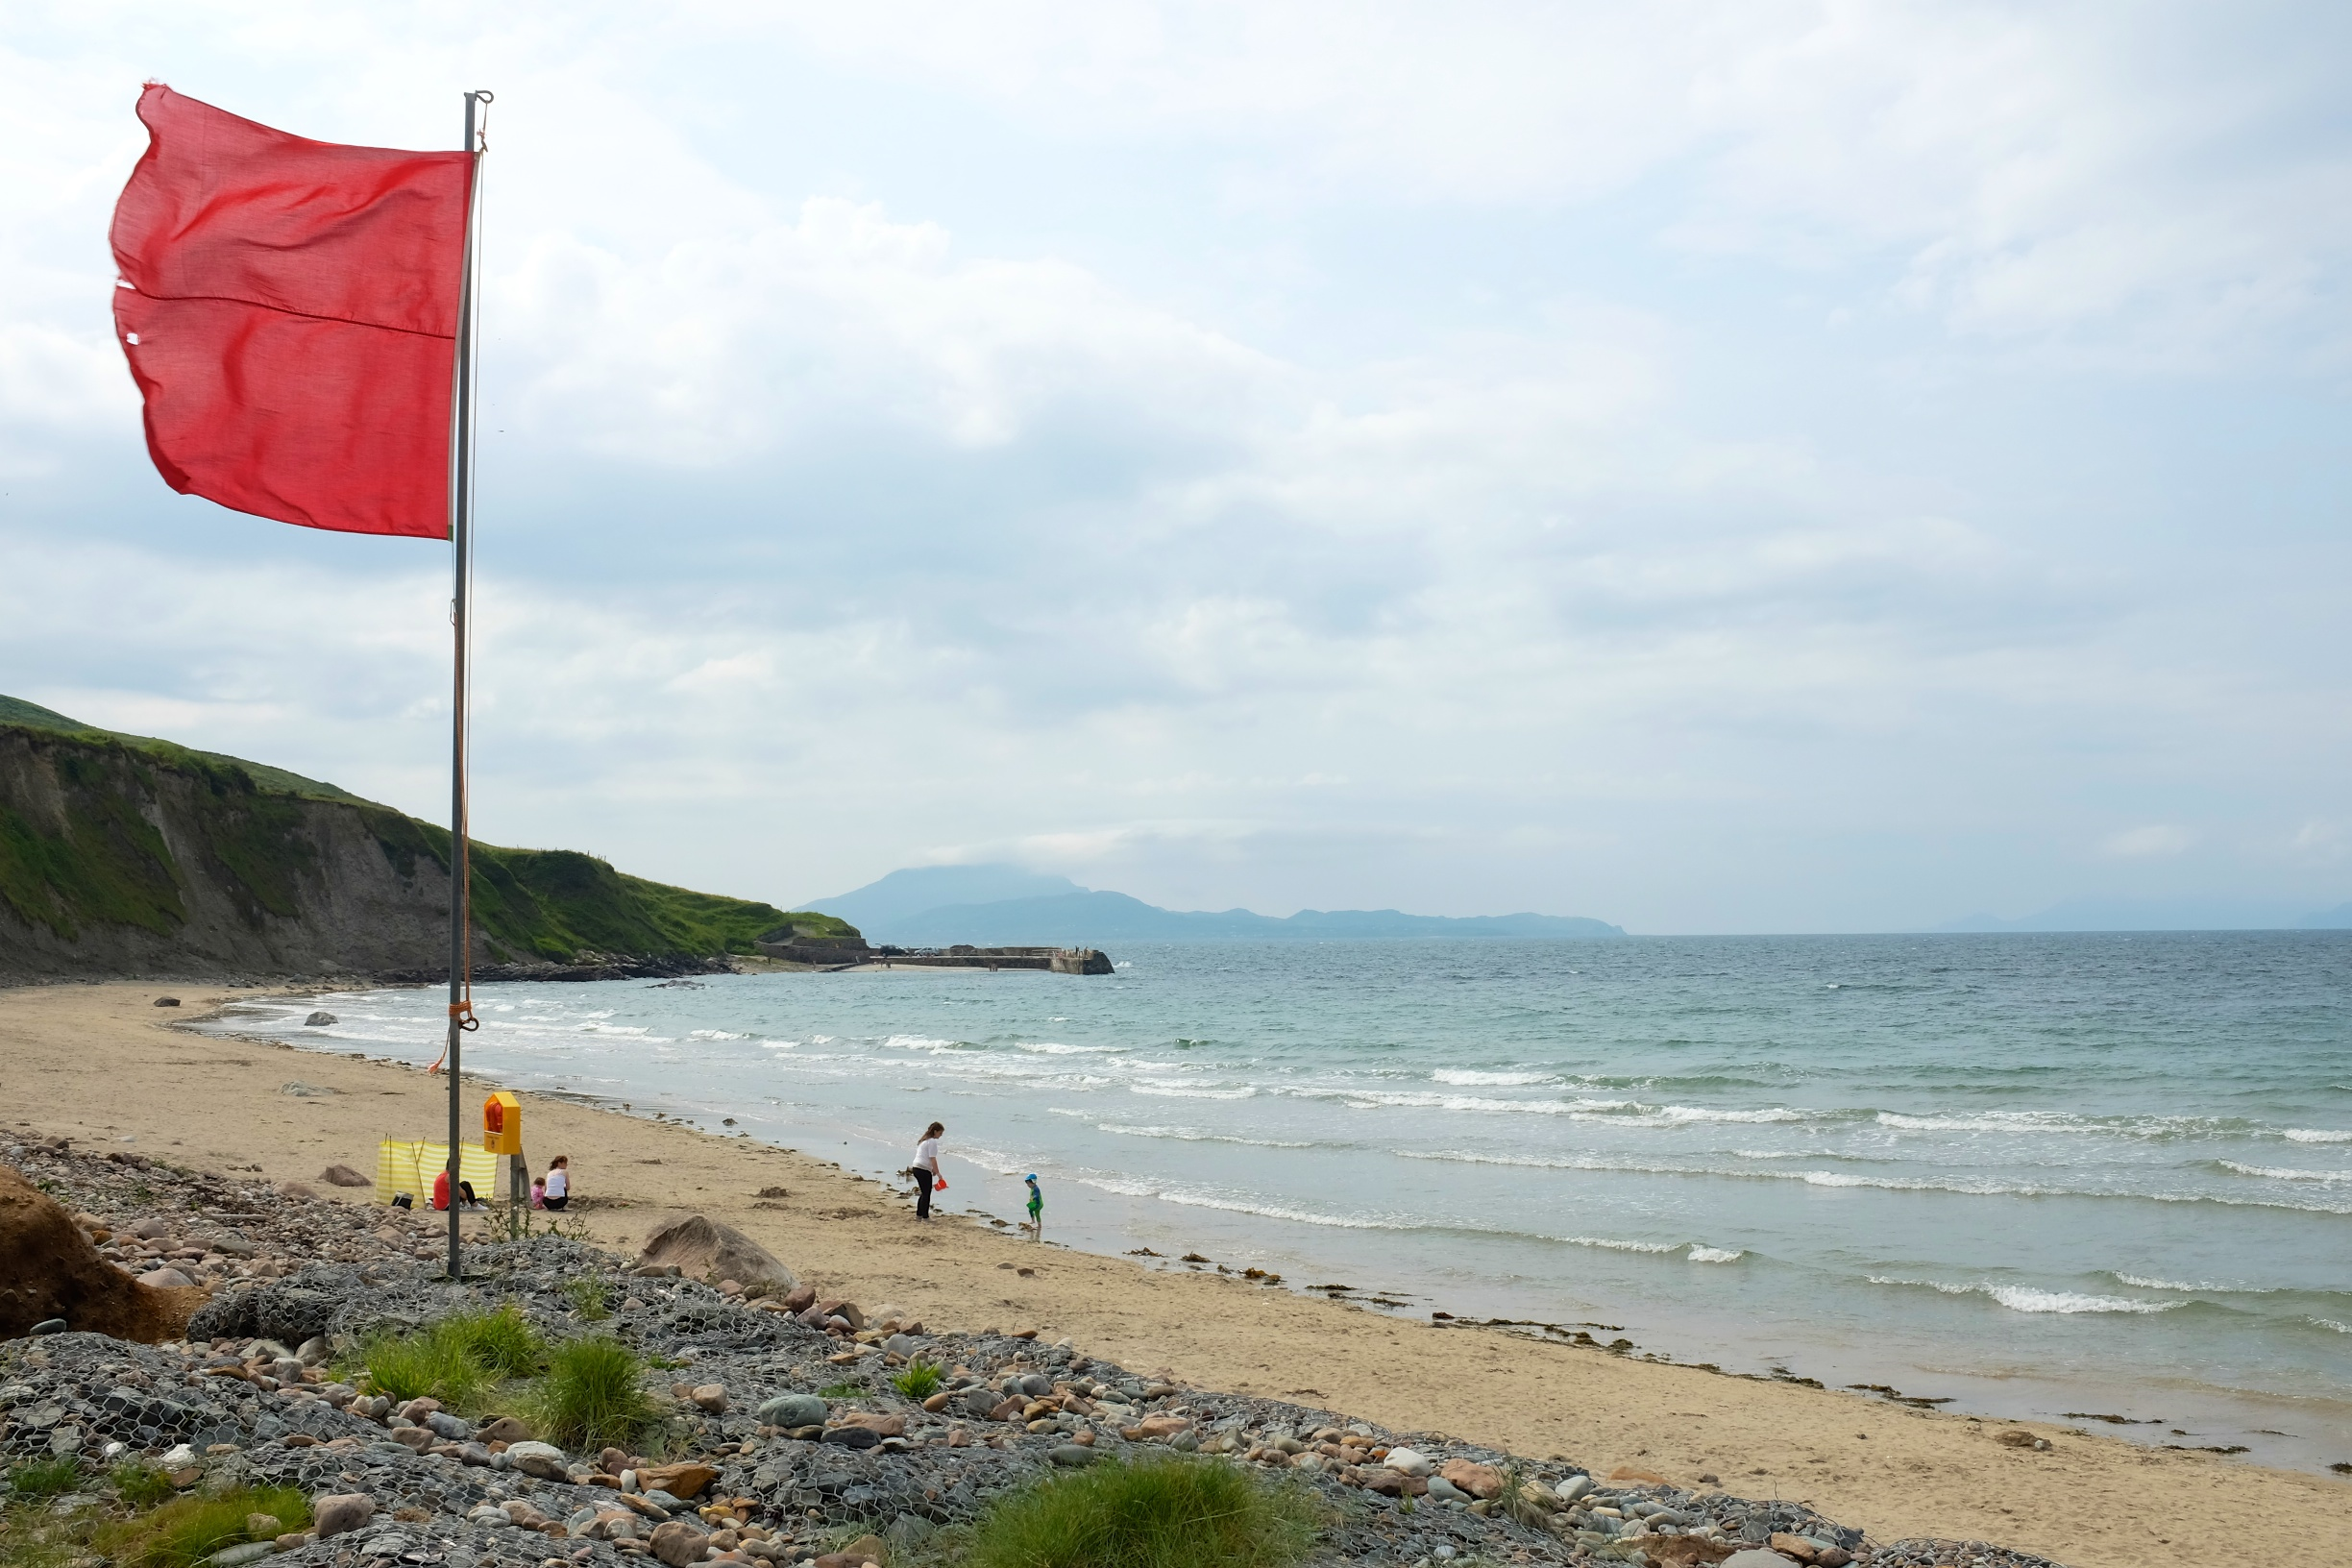 Lifeguard Red flag - conditions are not safe for swimming